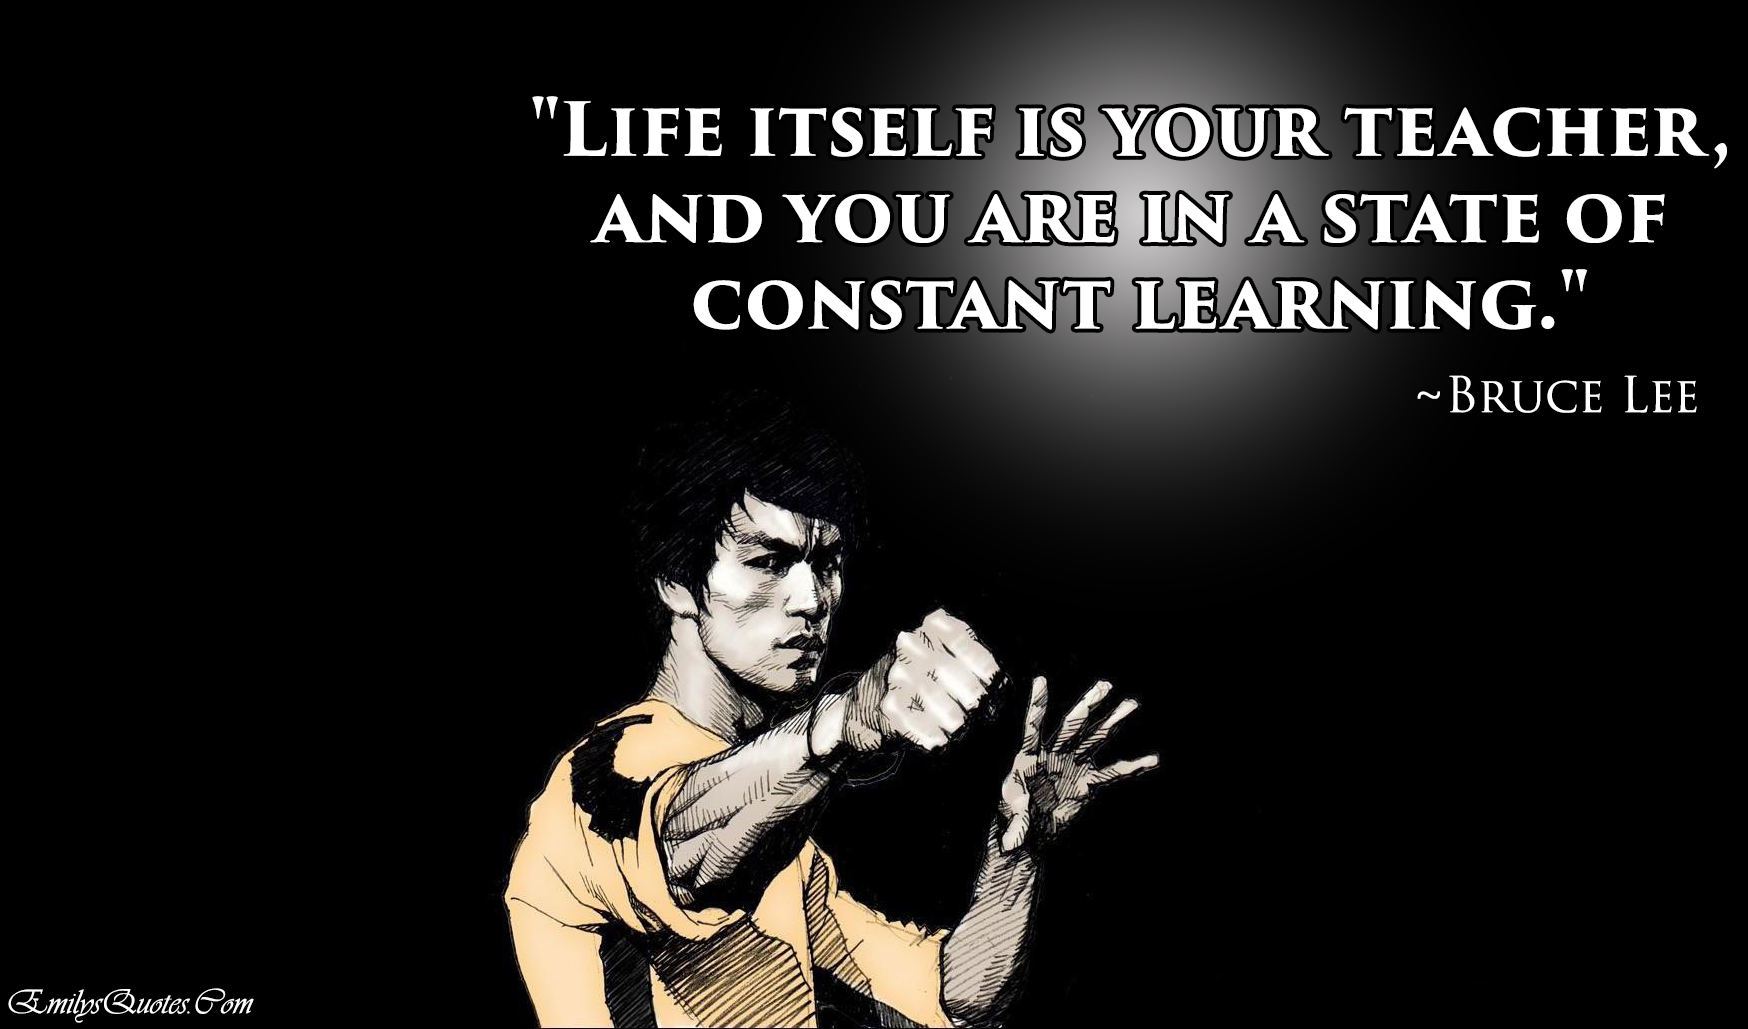 Wisdom About Life Quotes Life Itself Is Your Teacher And You Are In A State Of Constant